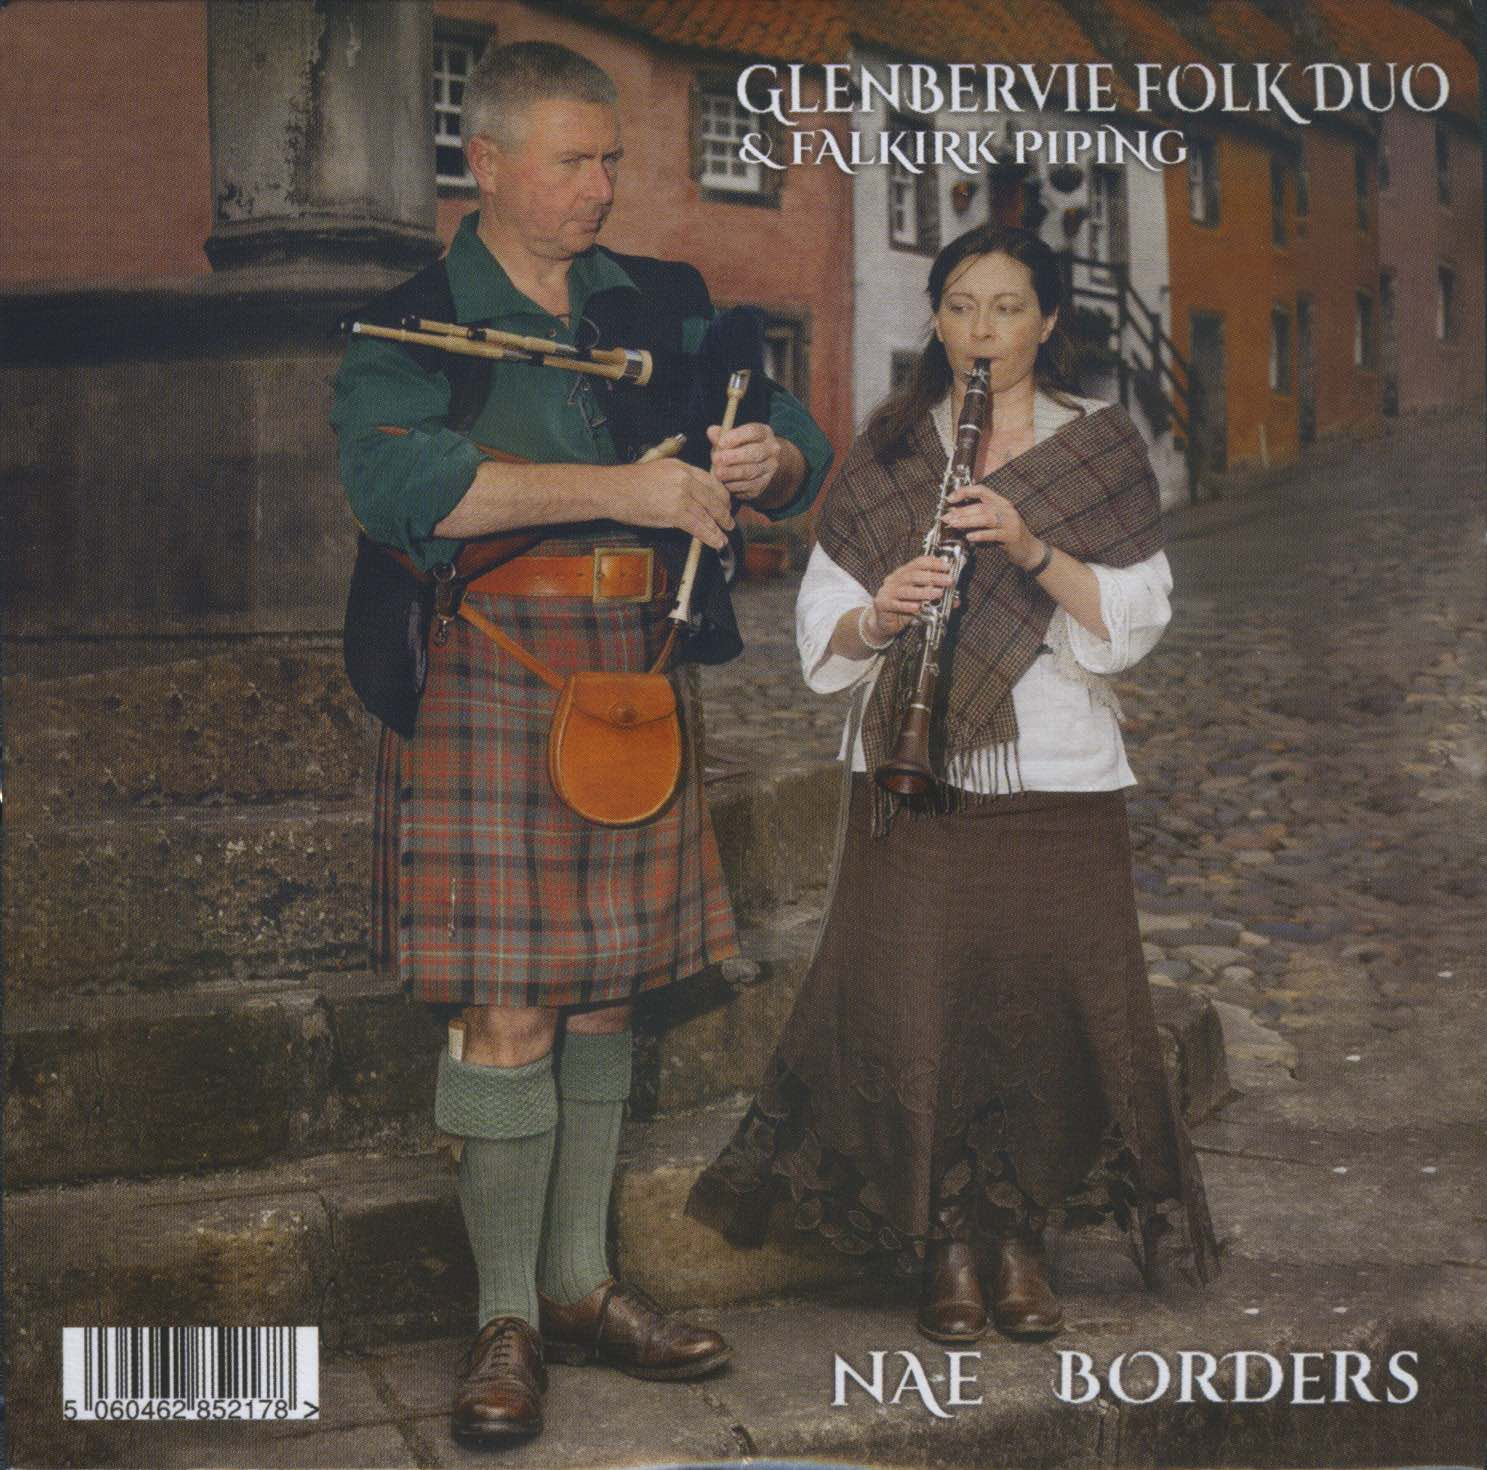 Nae Borders CD cover